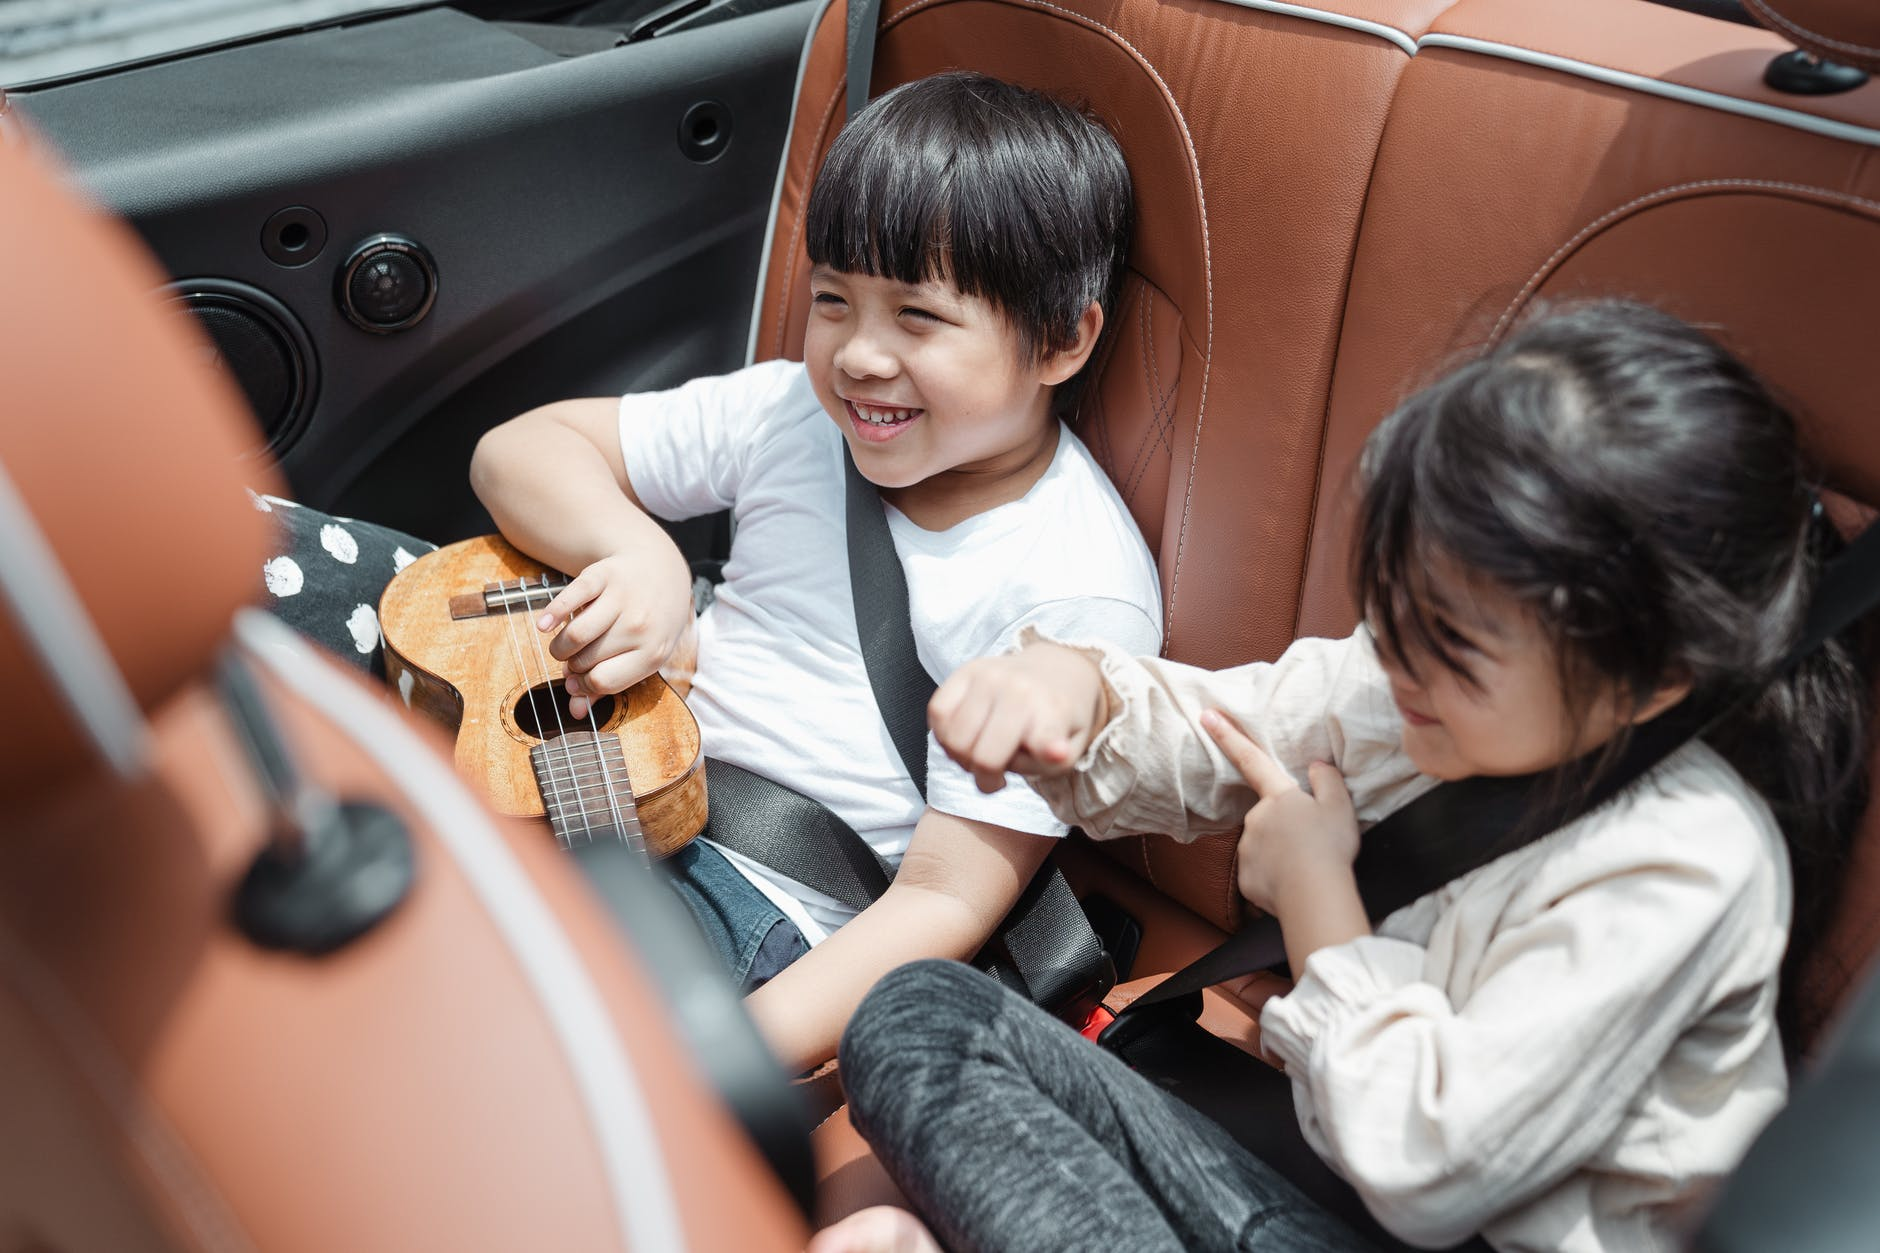 happy kids traveling in car - tips for road trips with family or friends